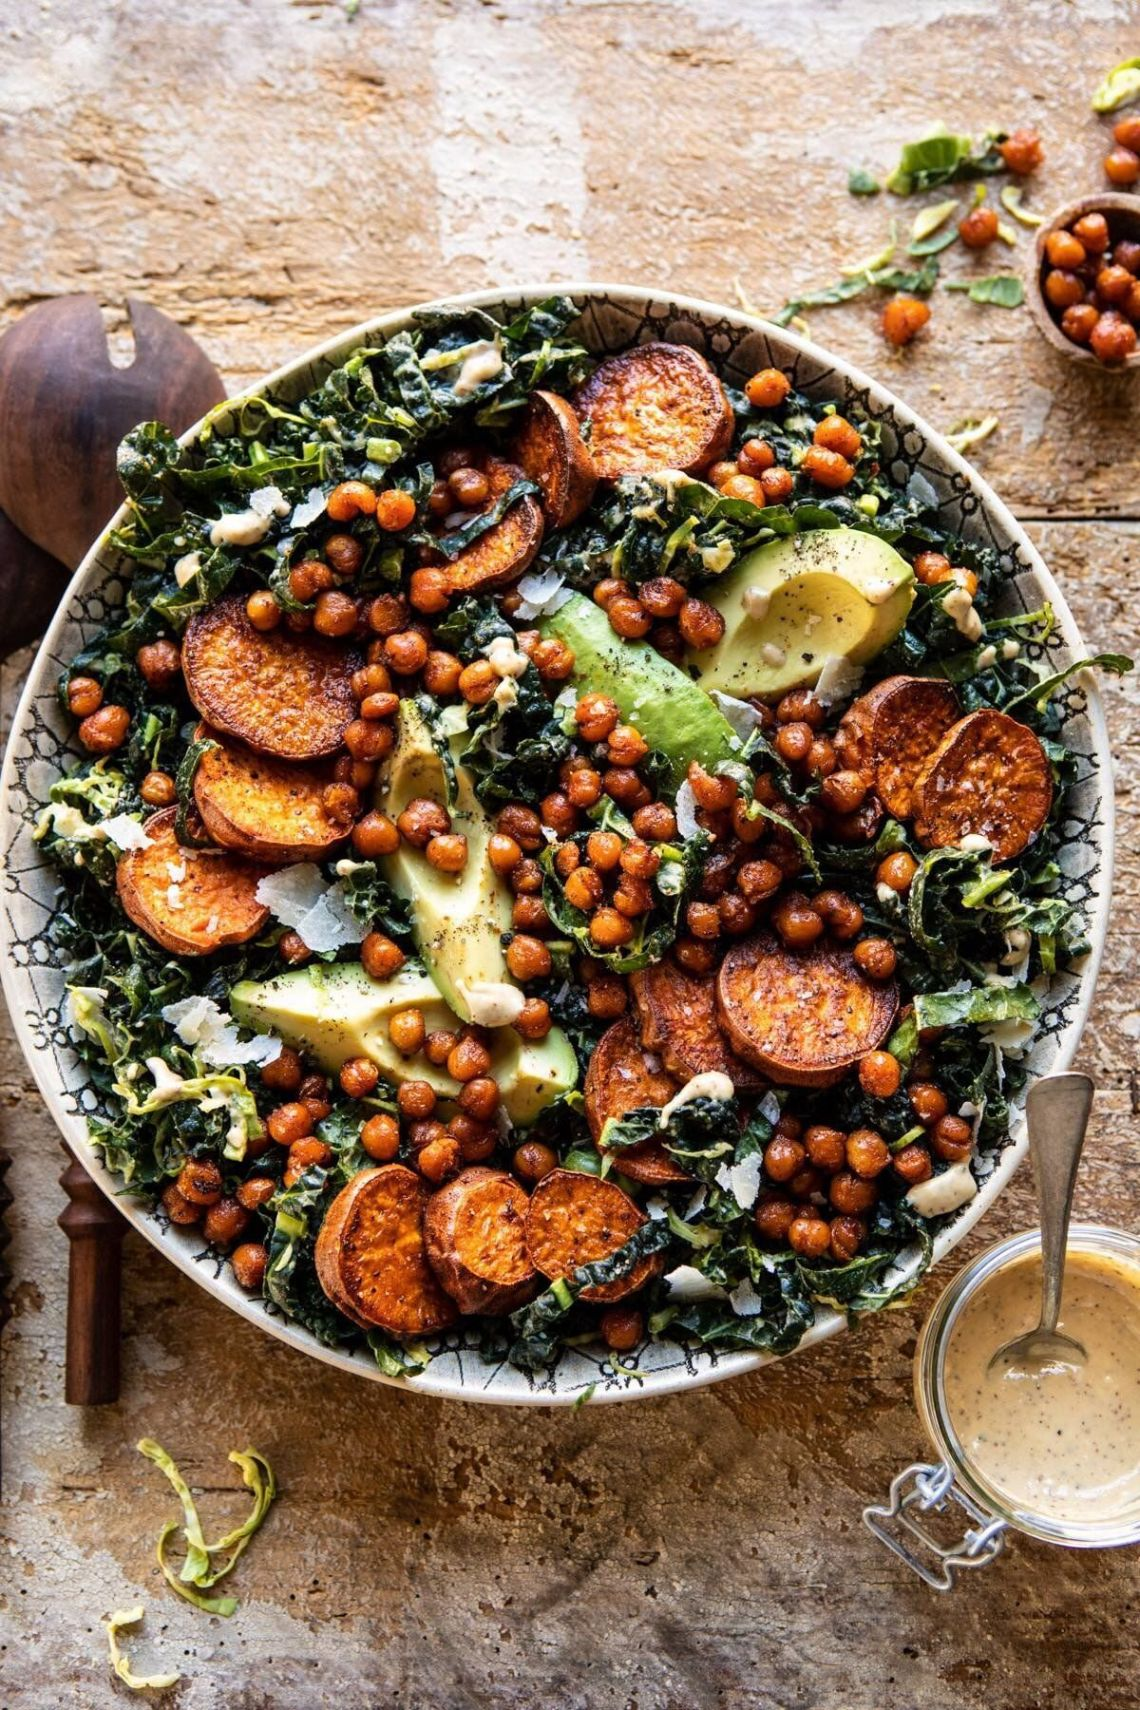 Kale Caesar Salad with Sweet Potatoes and Crispy Chickpeas from Half Baked Harvest